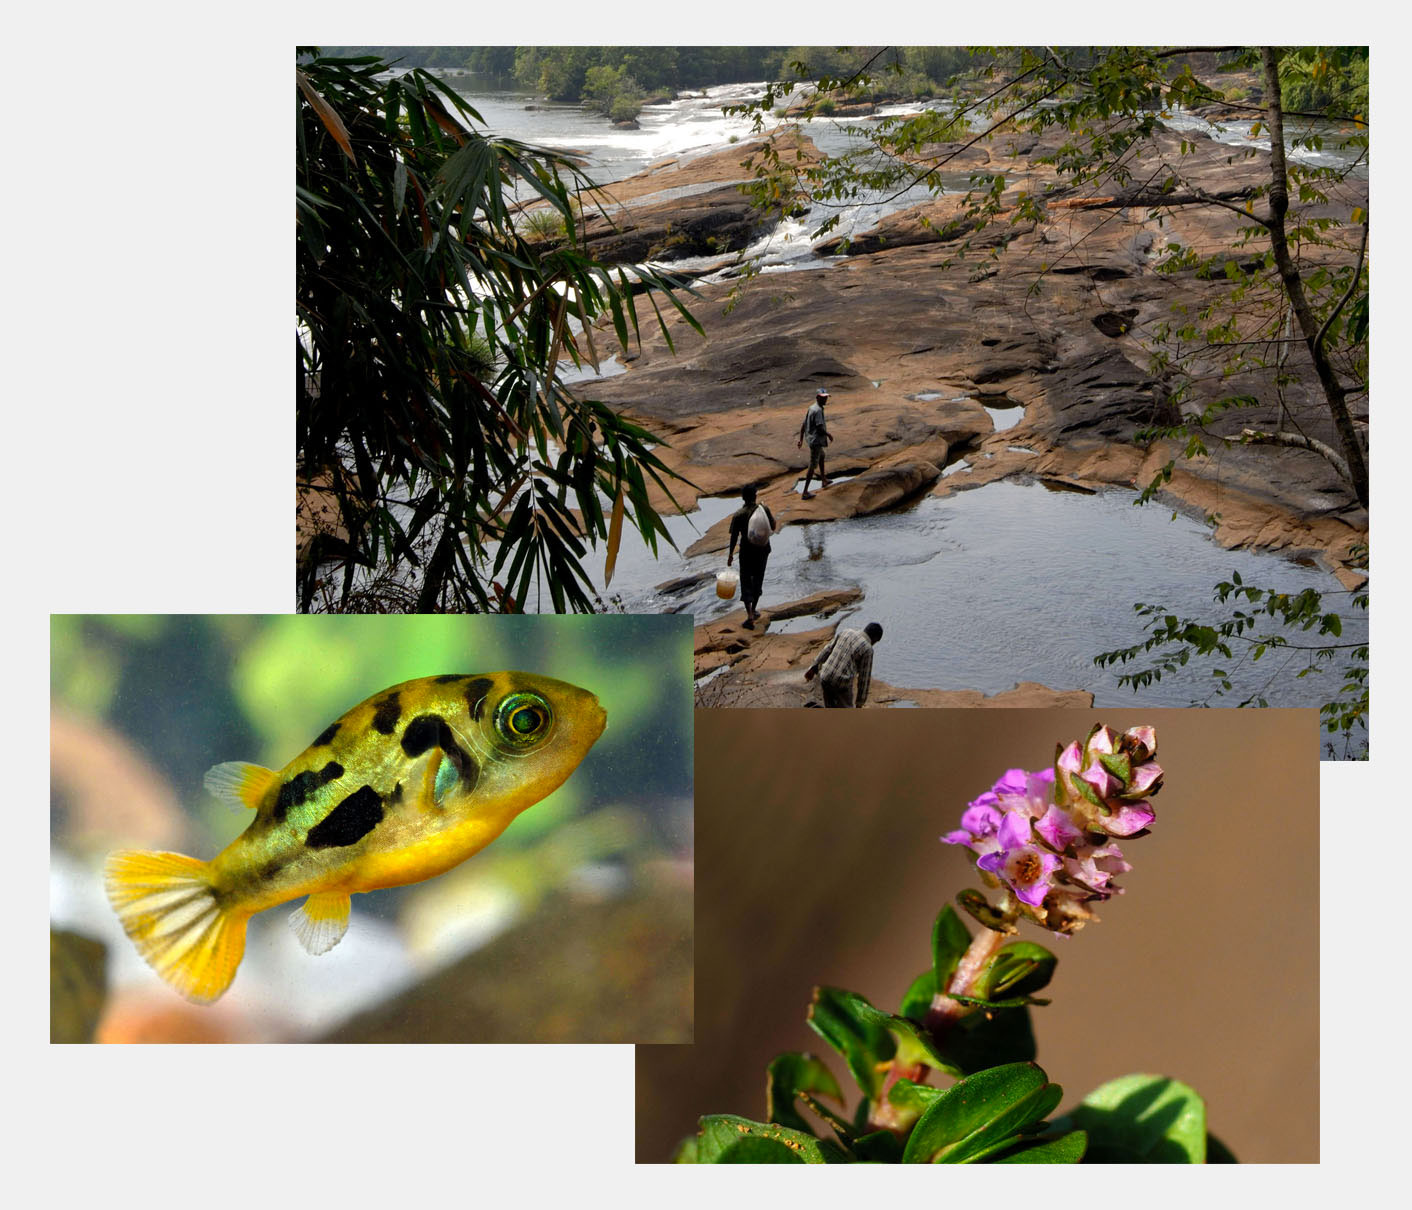 Biotope in Kerala, India